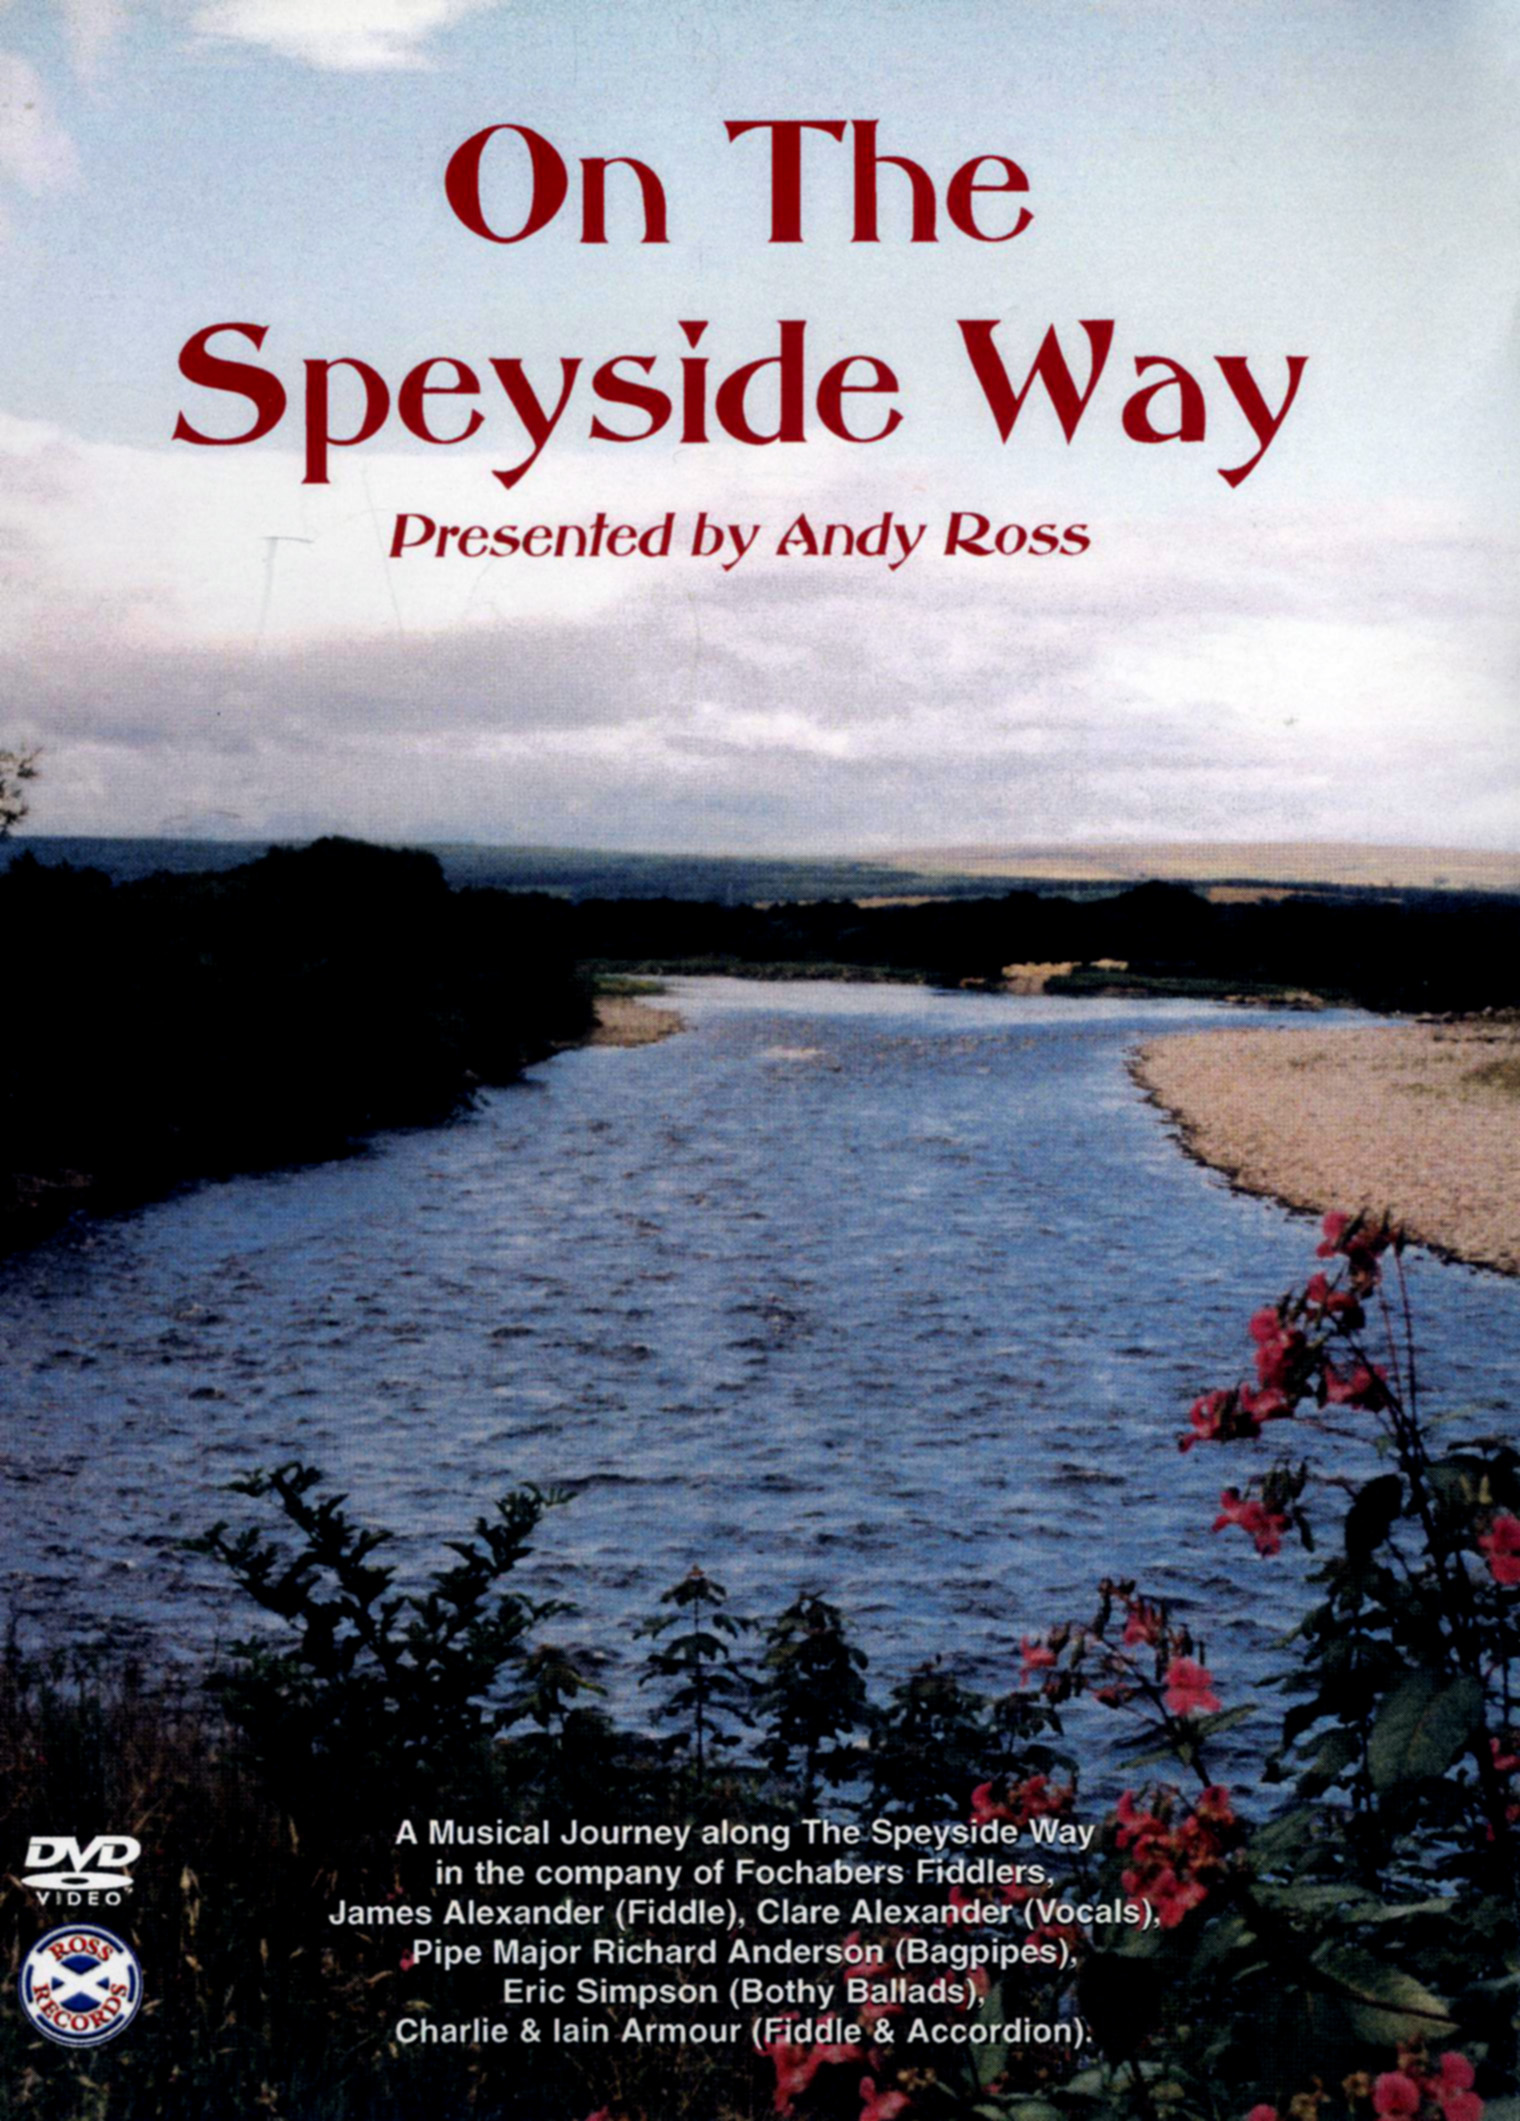 On The Speyside Way